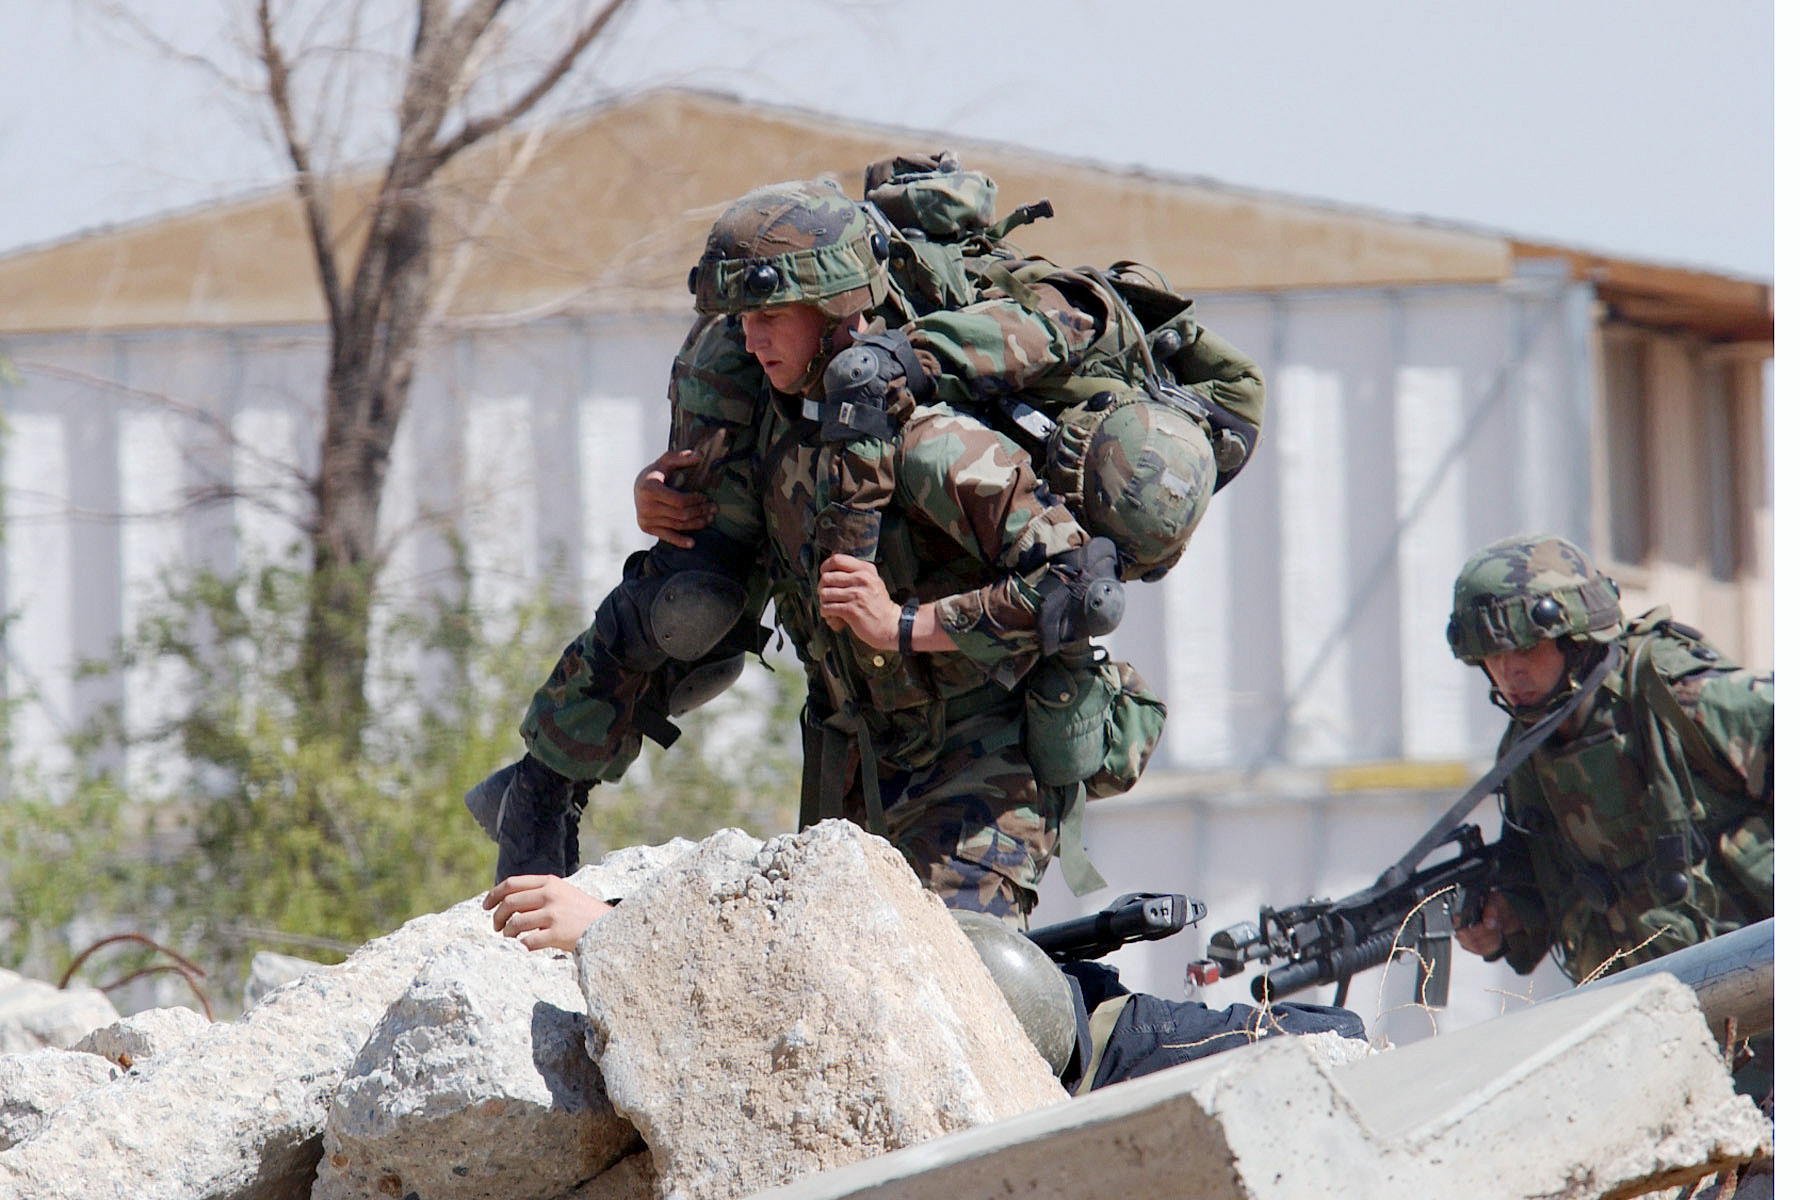 A Marine carries a wounded comrade to safety during an urban combat training demonstration being conducted at the Southern California Logistics Airport, formerly George Air Force Base, during the joint service experimentation process dubbed Millennium Challenge 2002. While the base was closed, the military continued to use it for training exercises. (RDO).